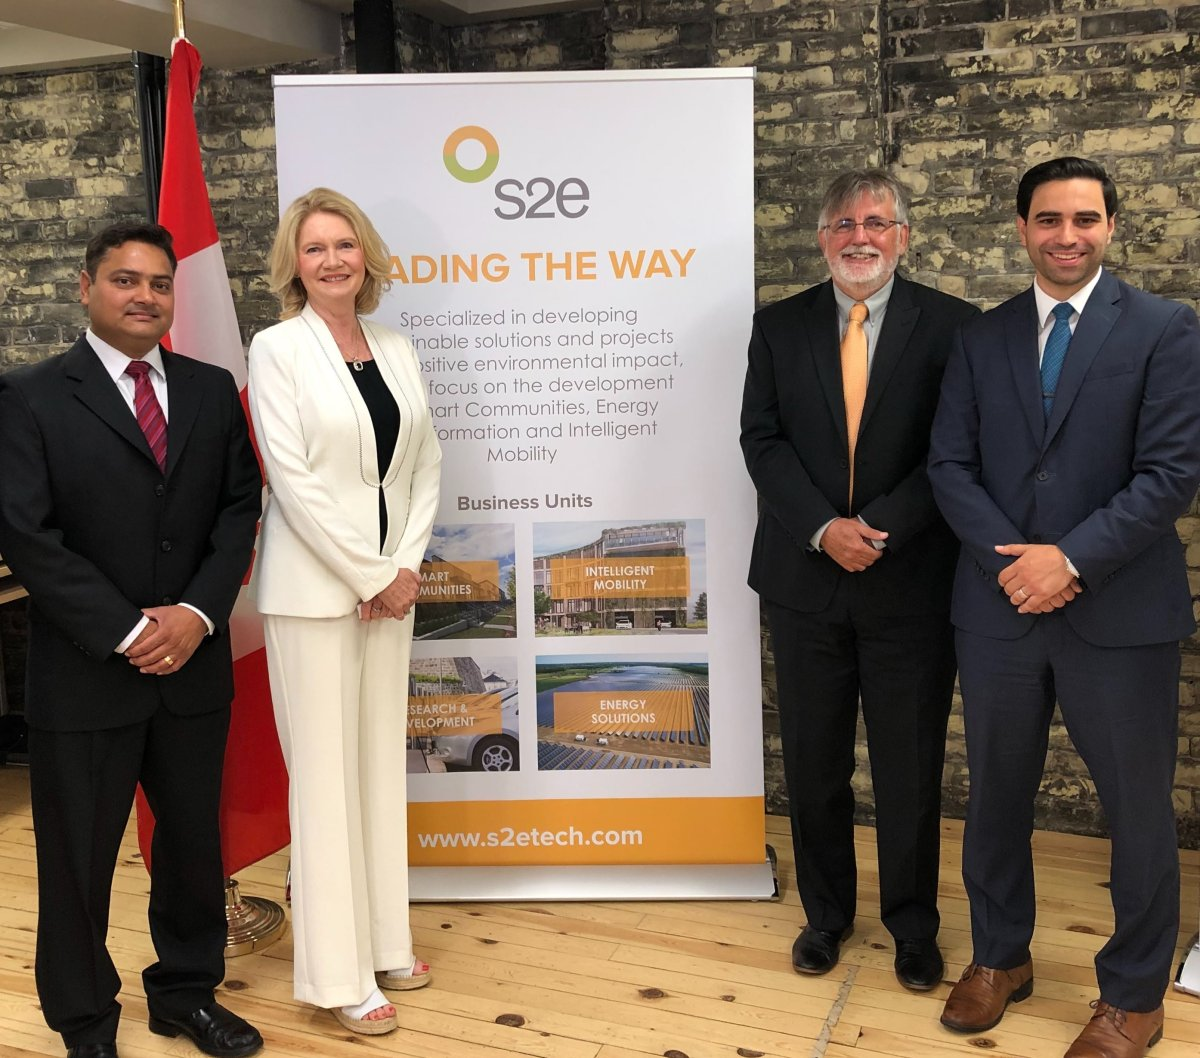 From left to right: Ady Vyas, s2e Technologies VP of Energy and Mobility Solutions, London West MP Kate Young, s2e Technlogies CEO Milfred Hammerbacher, and London North Centre MP Peter Fragiskatos.